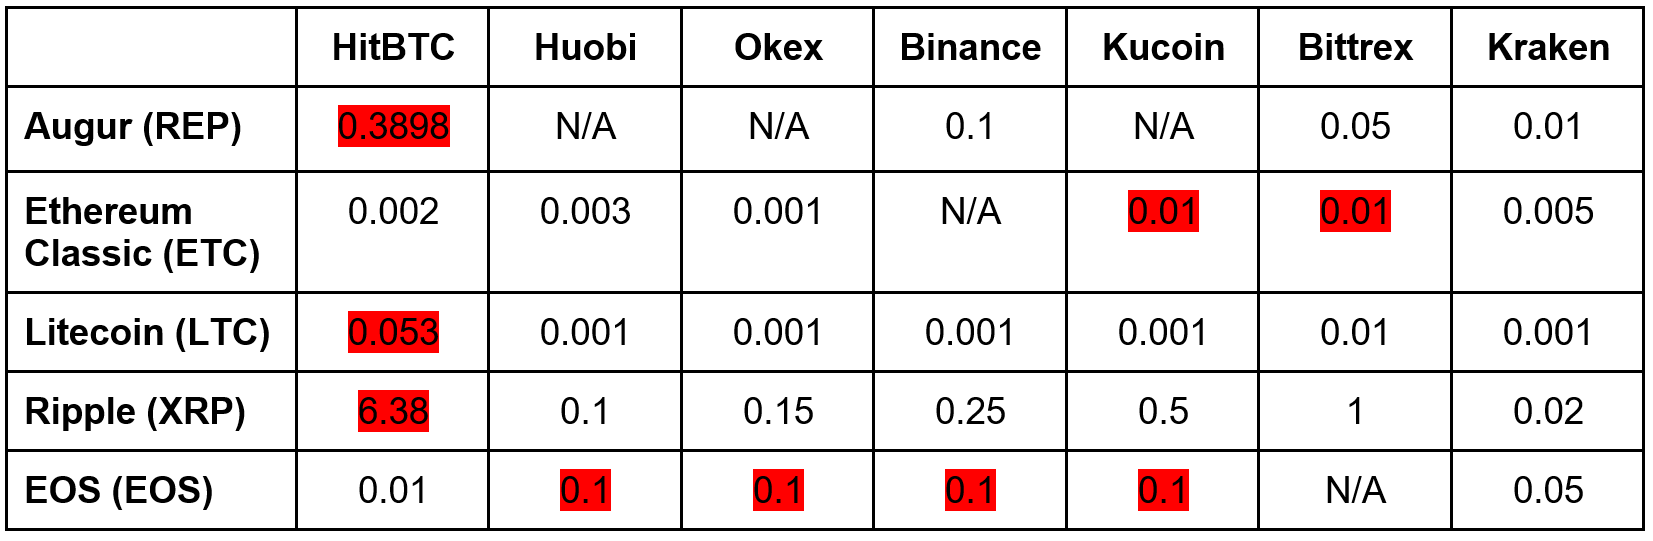 In some cases, HitBTC has 10-40X higher fees than benchmark.